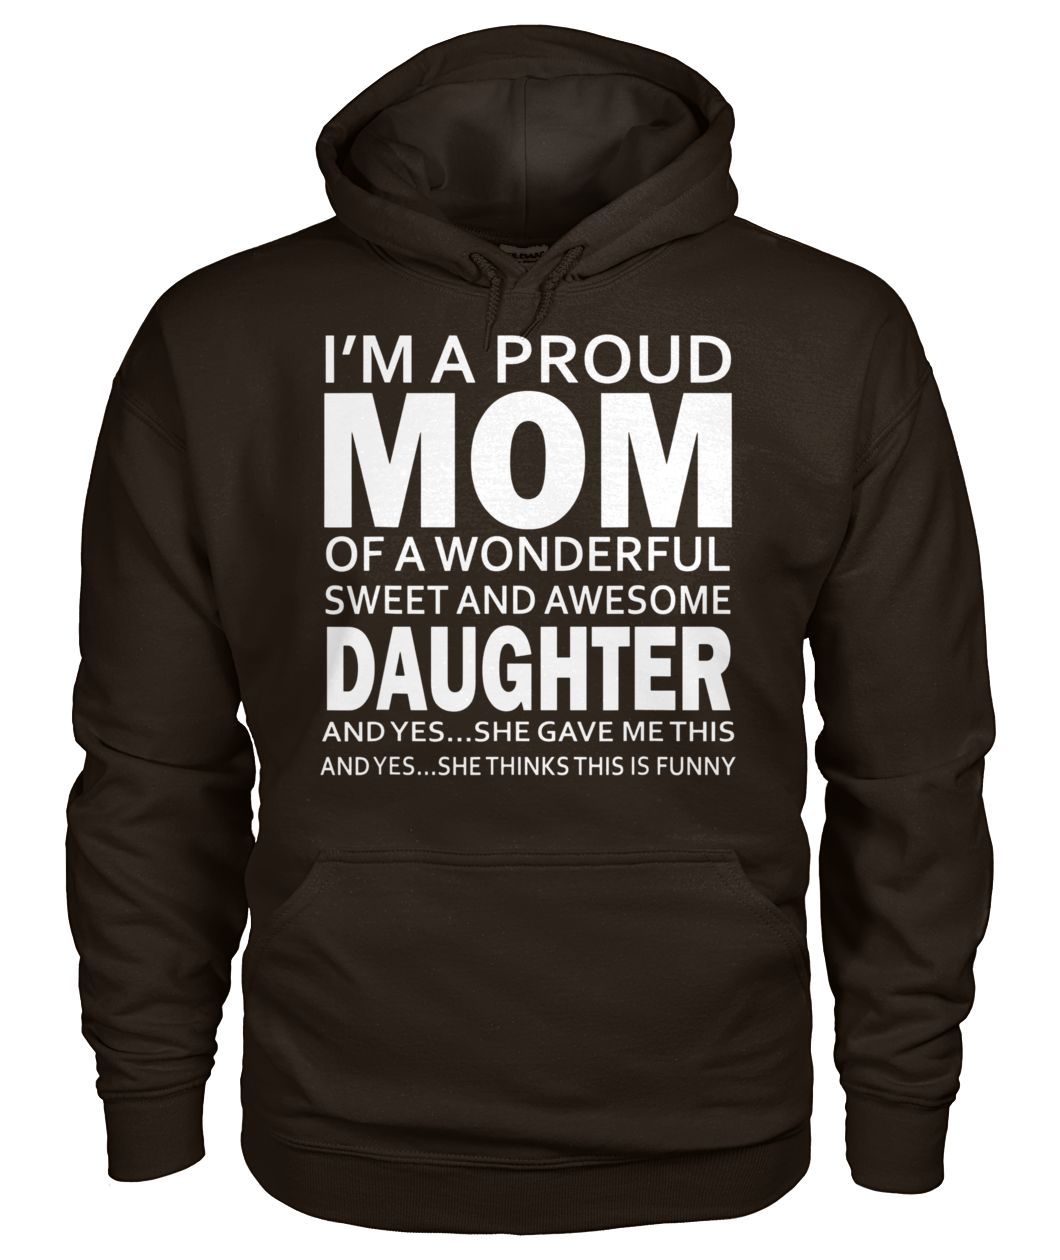 I'm a proud mom of a wonderful sweet and awesome daughter gildan hoodie